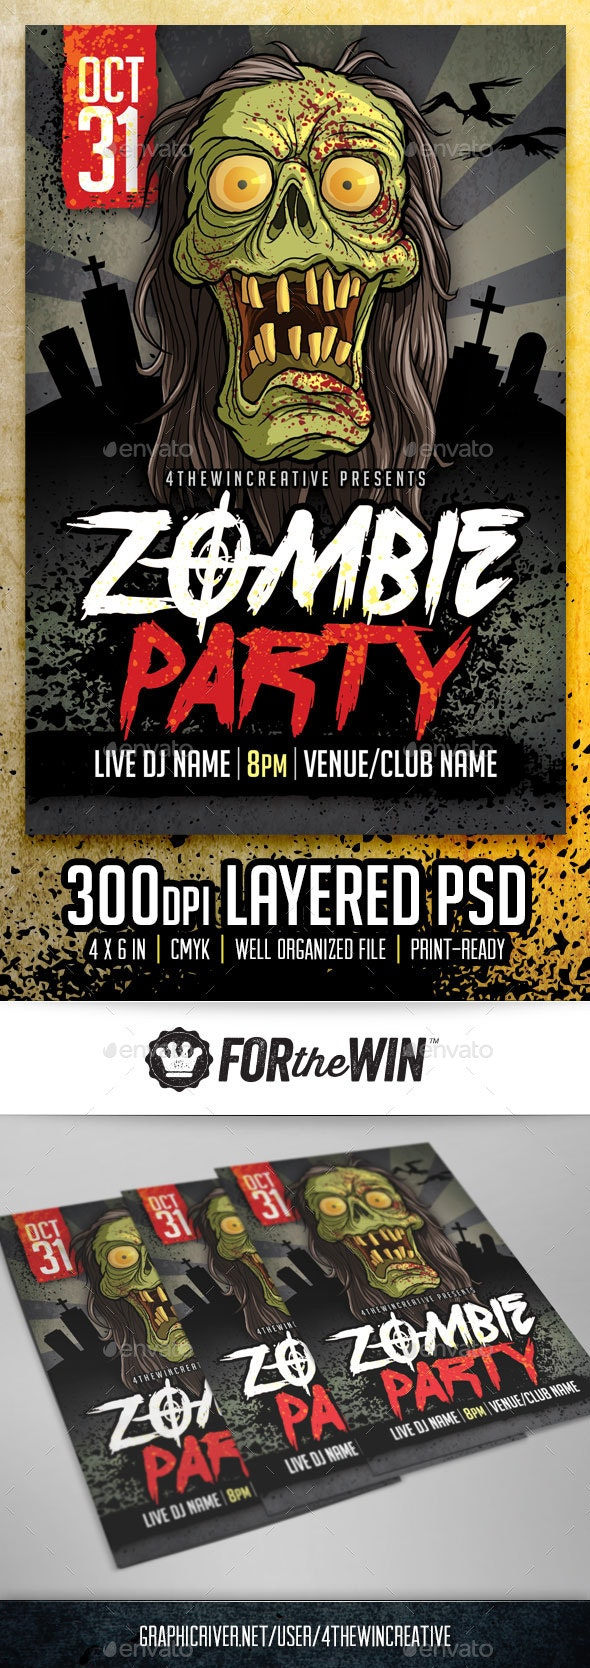 Spooky Zombie Party Flyer Template - Clubs & Parties Events